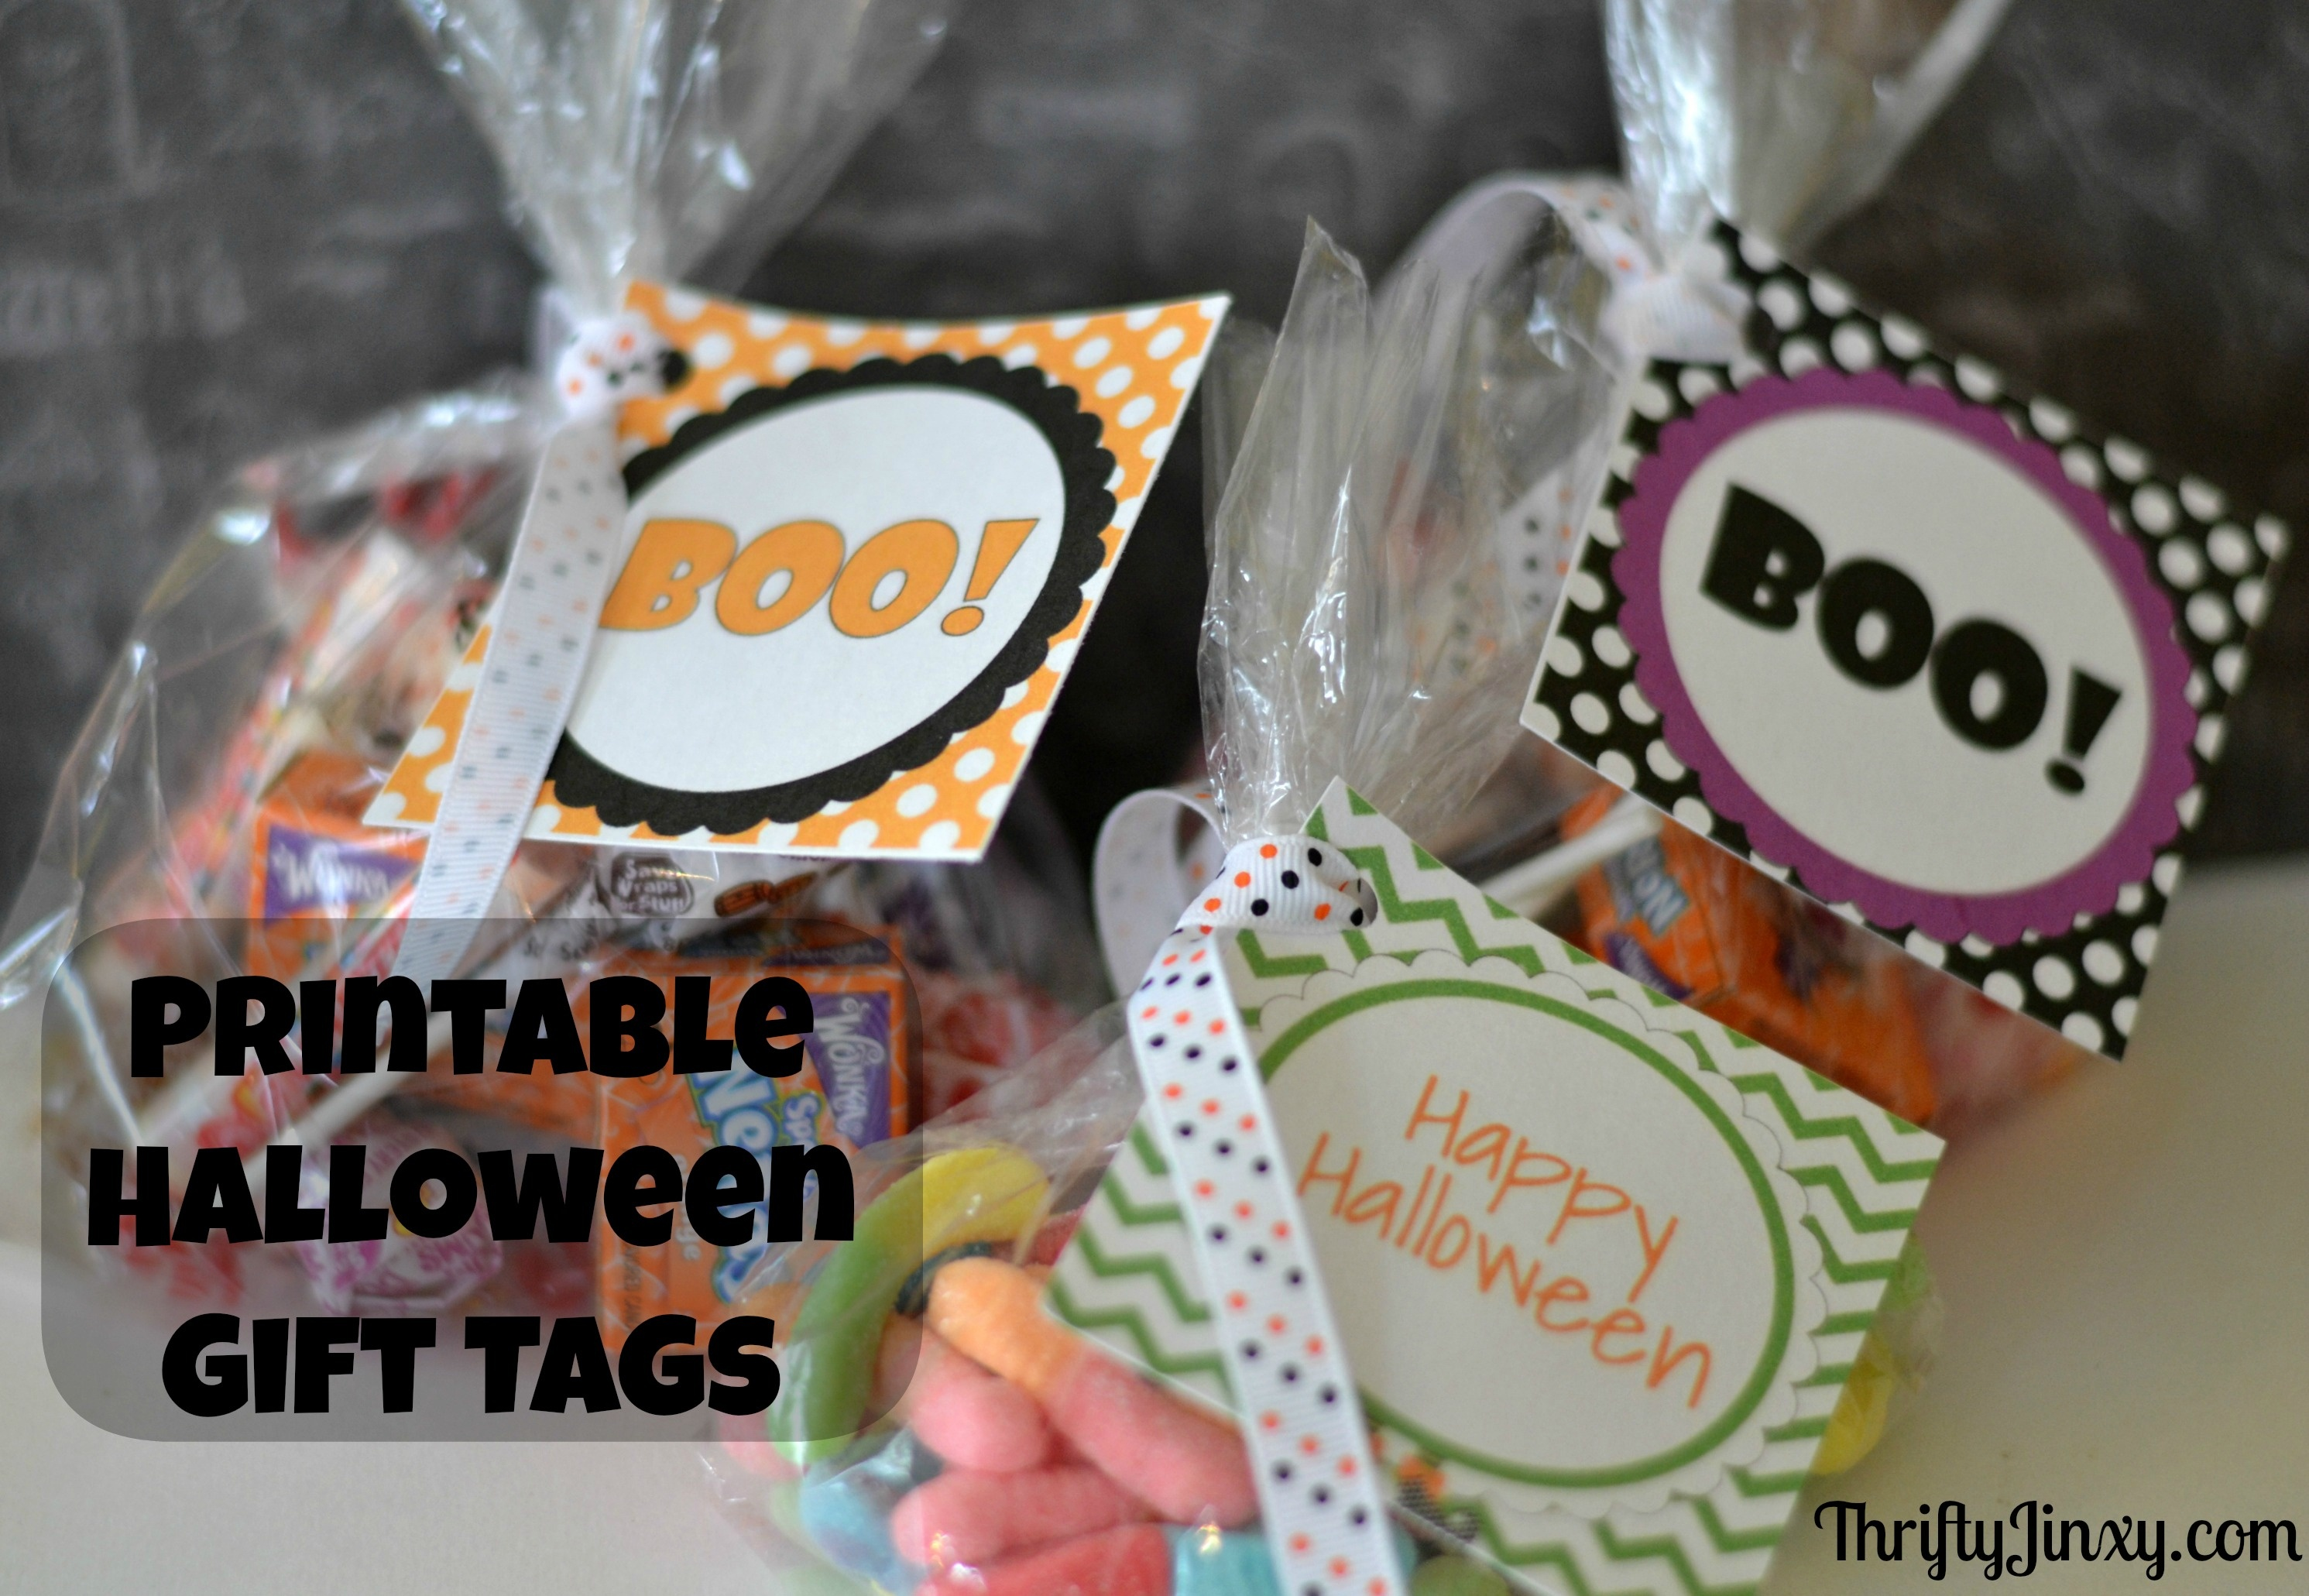 Free Printable Halloween Gift Tags And Treat Bag Tags - Thrifty Jinxy - Free Printable Halloween Labels For Treat Bags